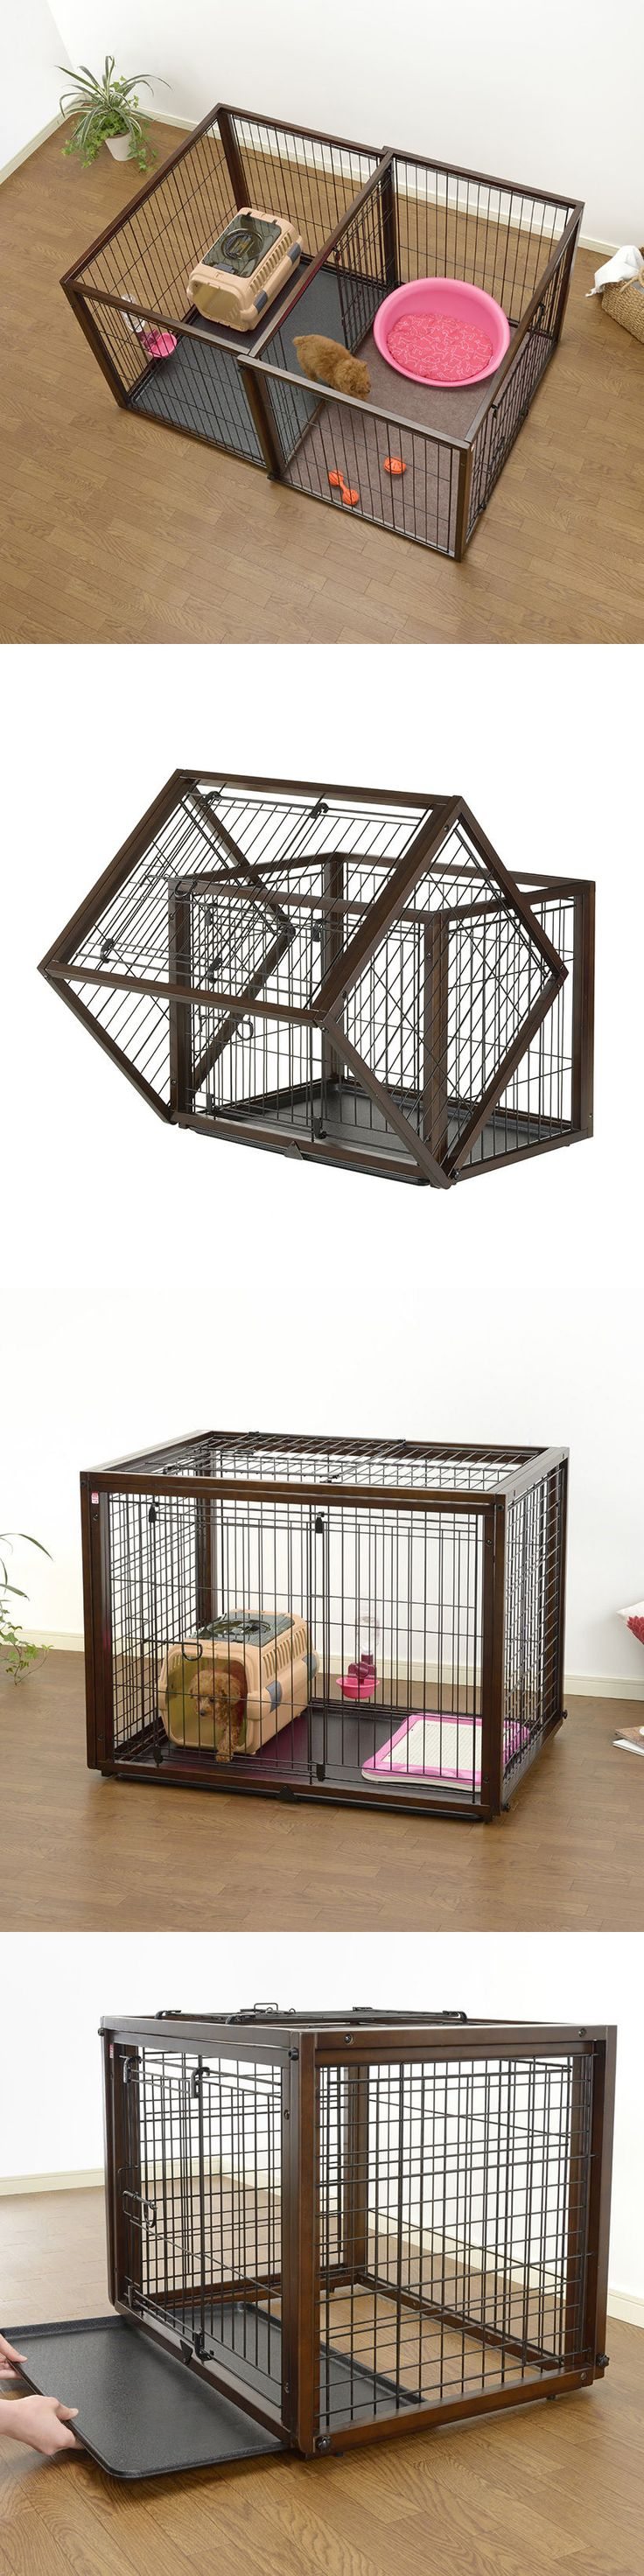 Cages and Crates 121851: Dog Crate And Play Pen Medium Pet Kennel Cage Exercise Tray Folding Puppy House -> BUY IT NOW ONLY: $379.99 on eBay!